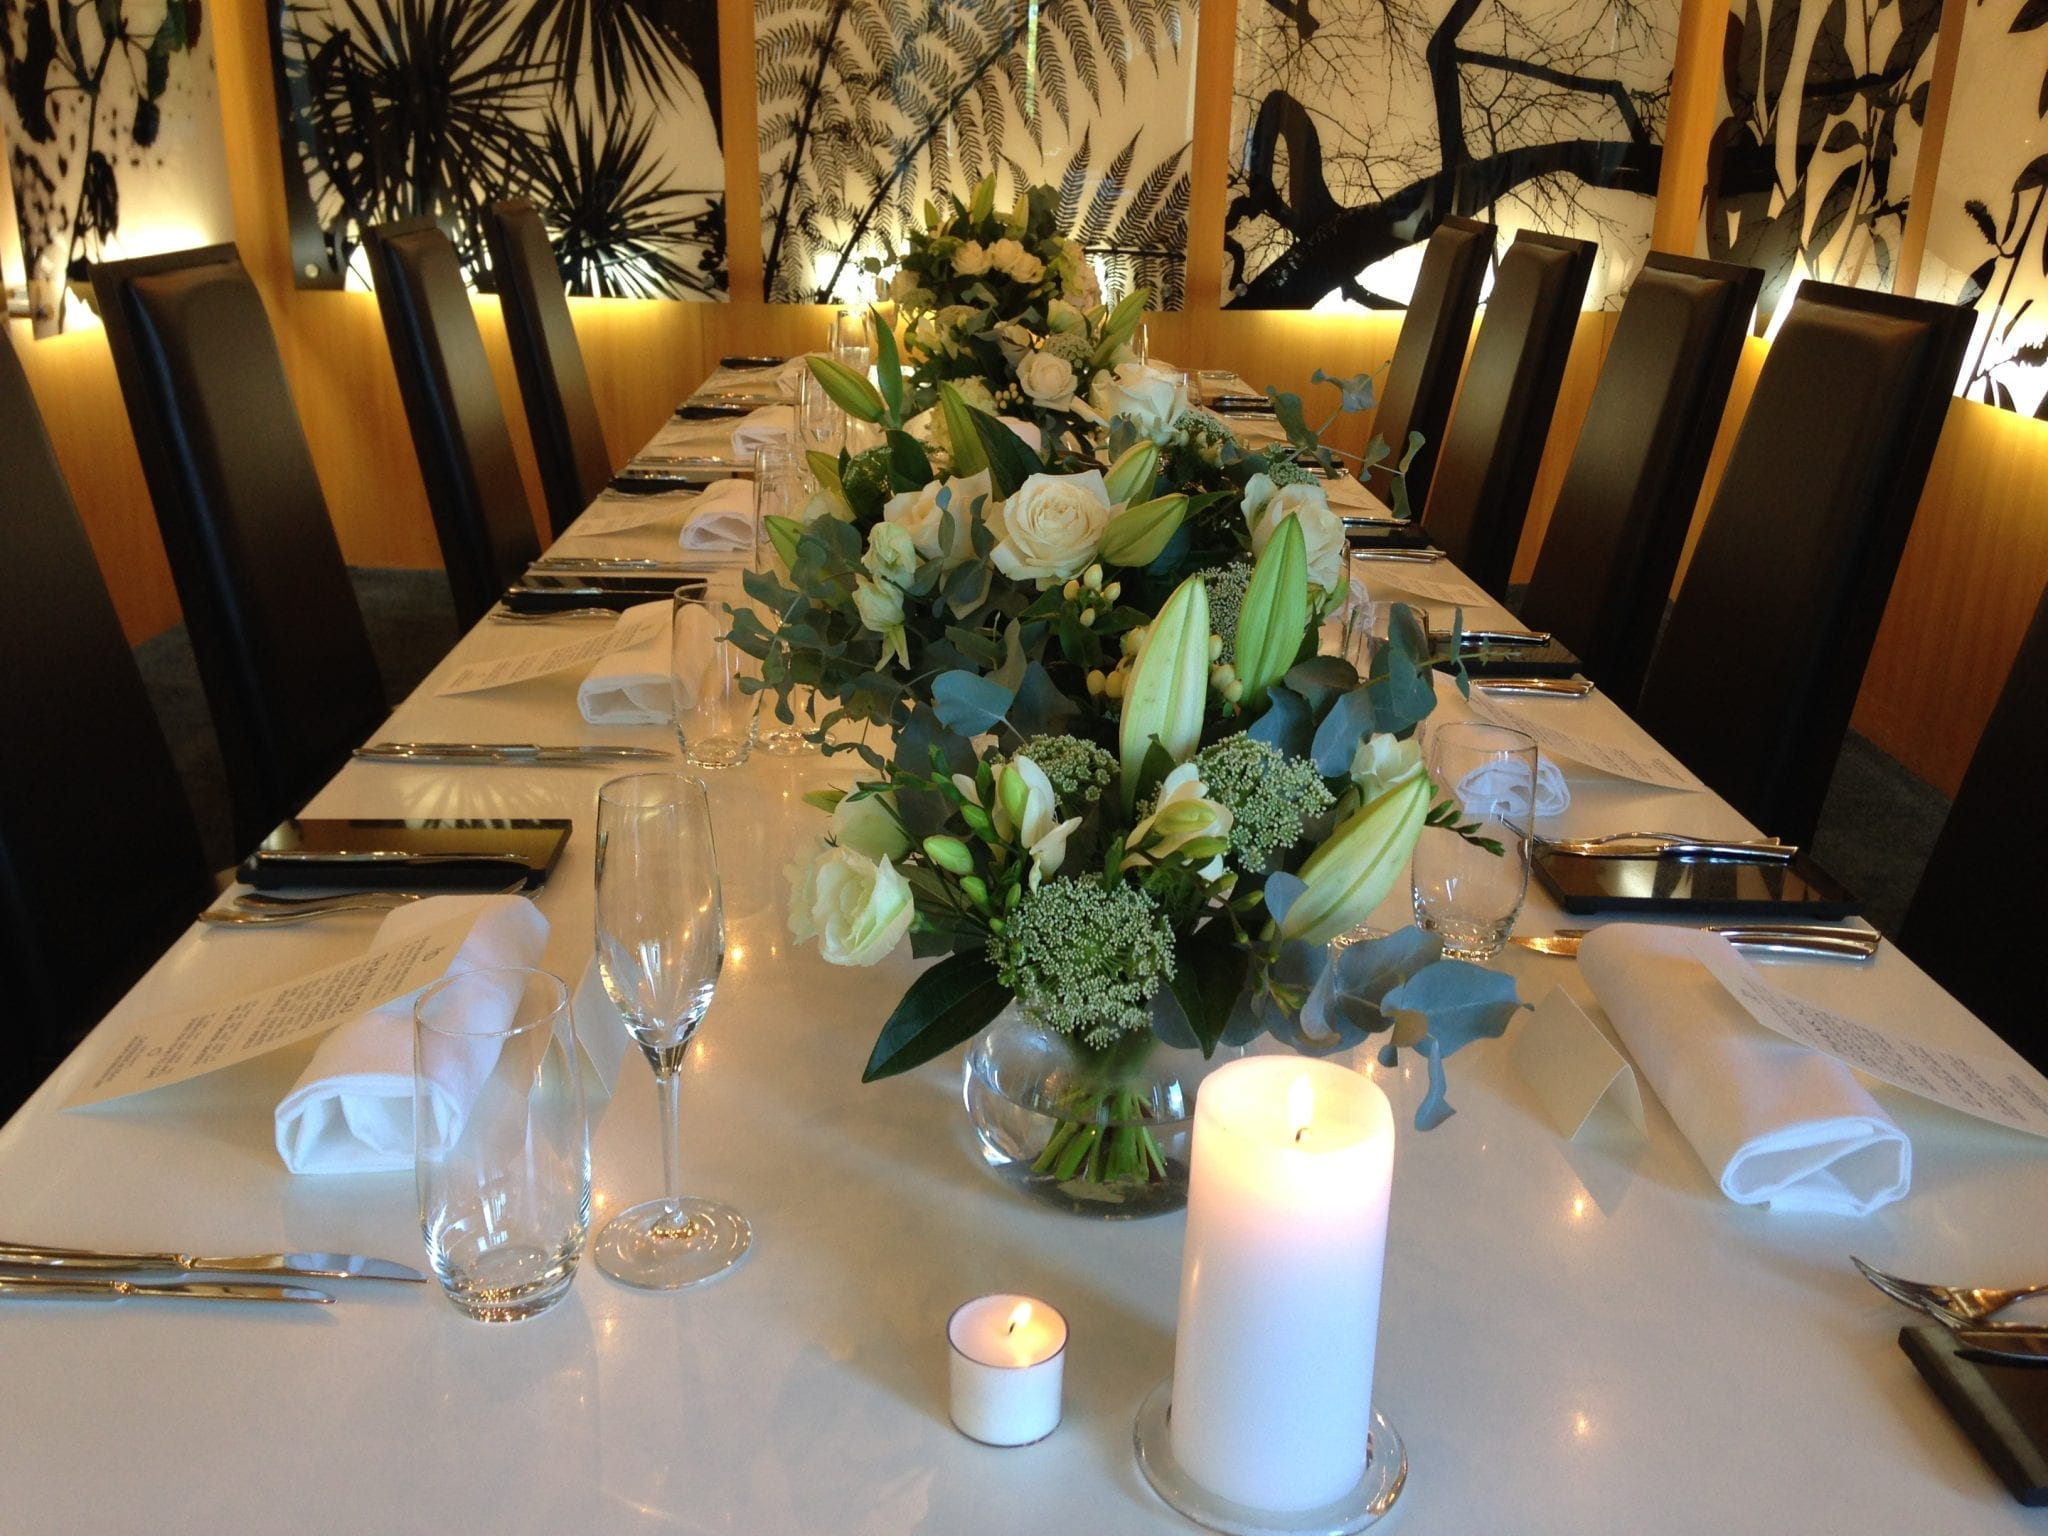 Kim Chan Events| table centrepiece of white and green